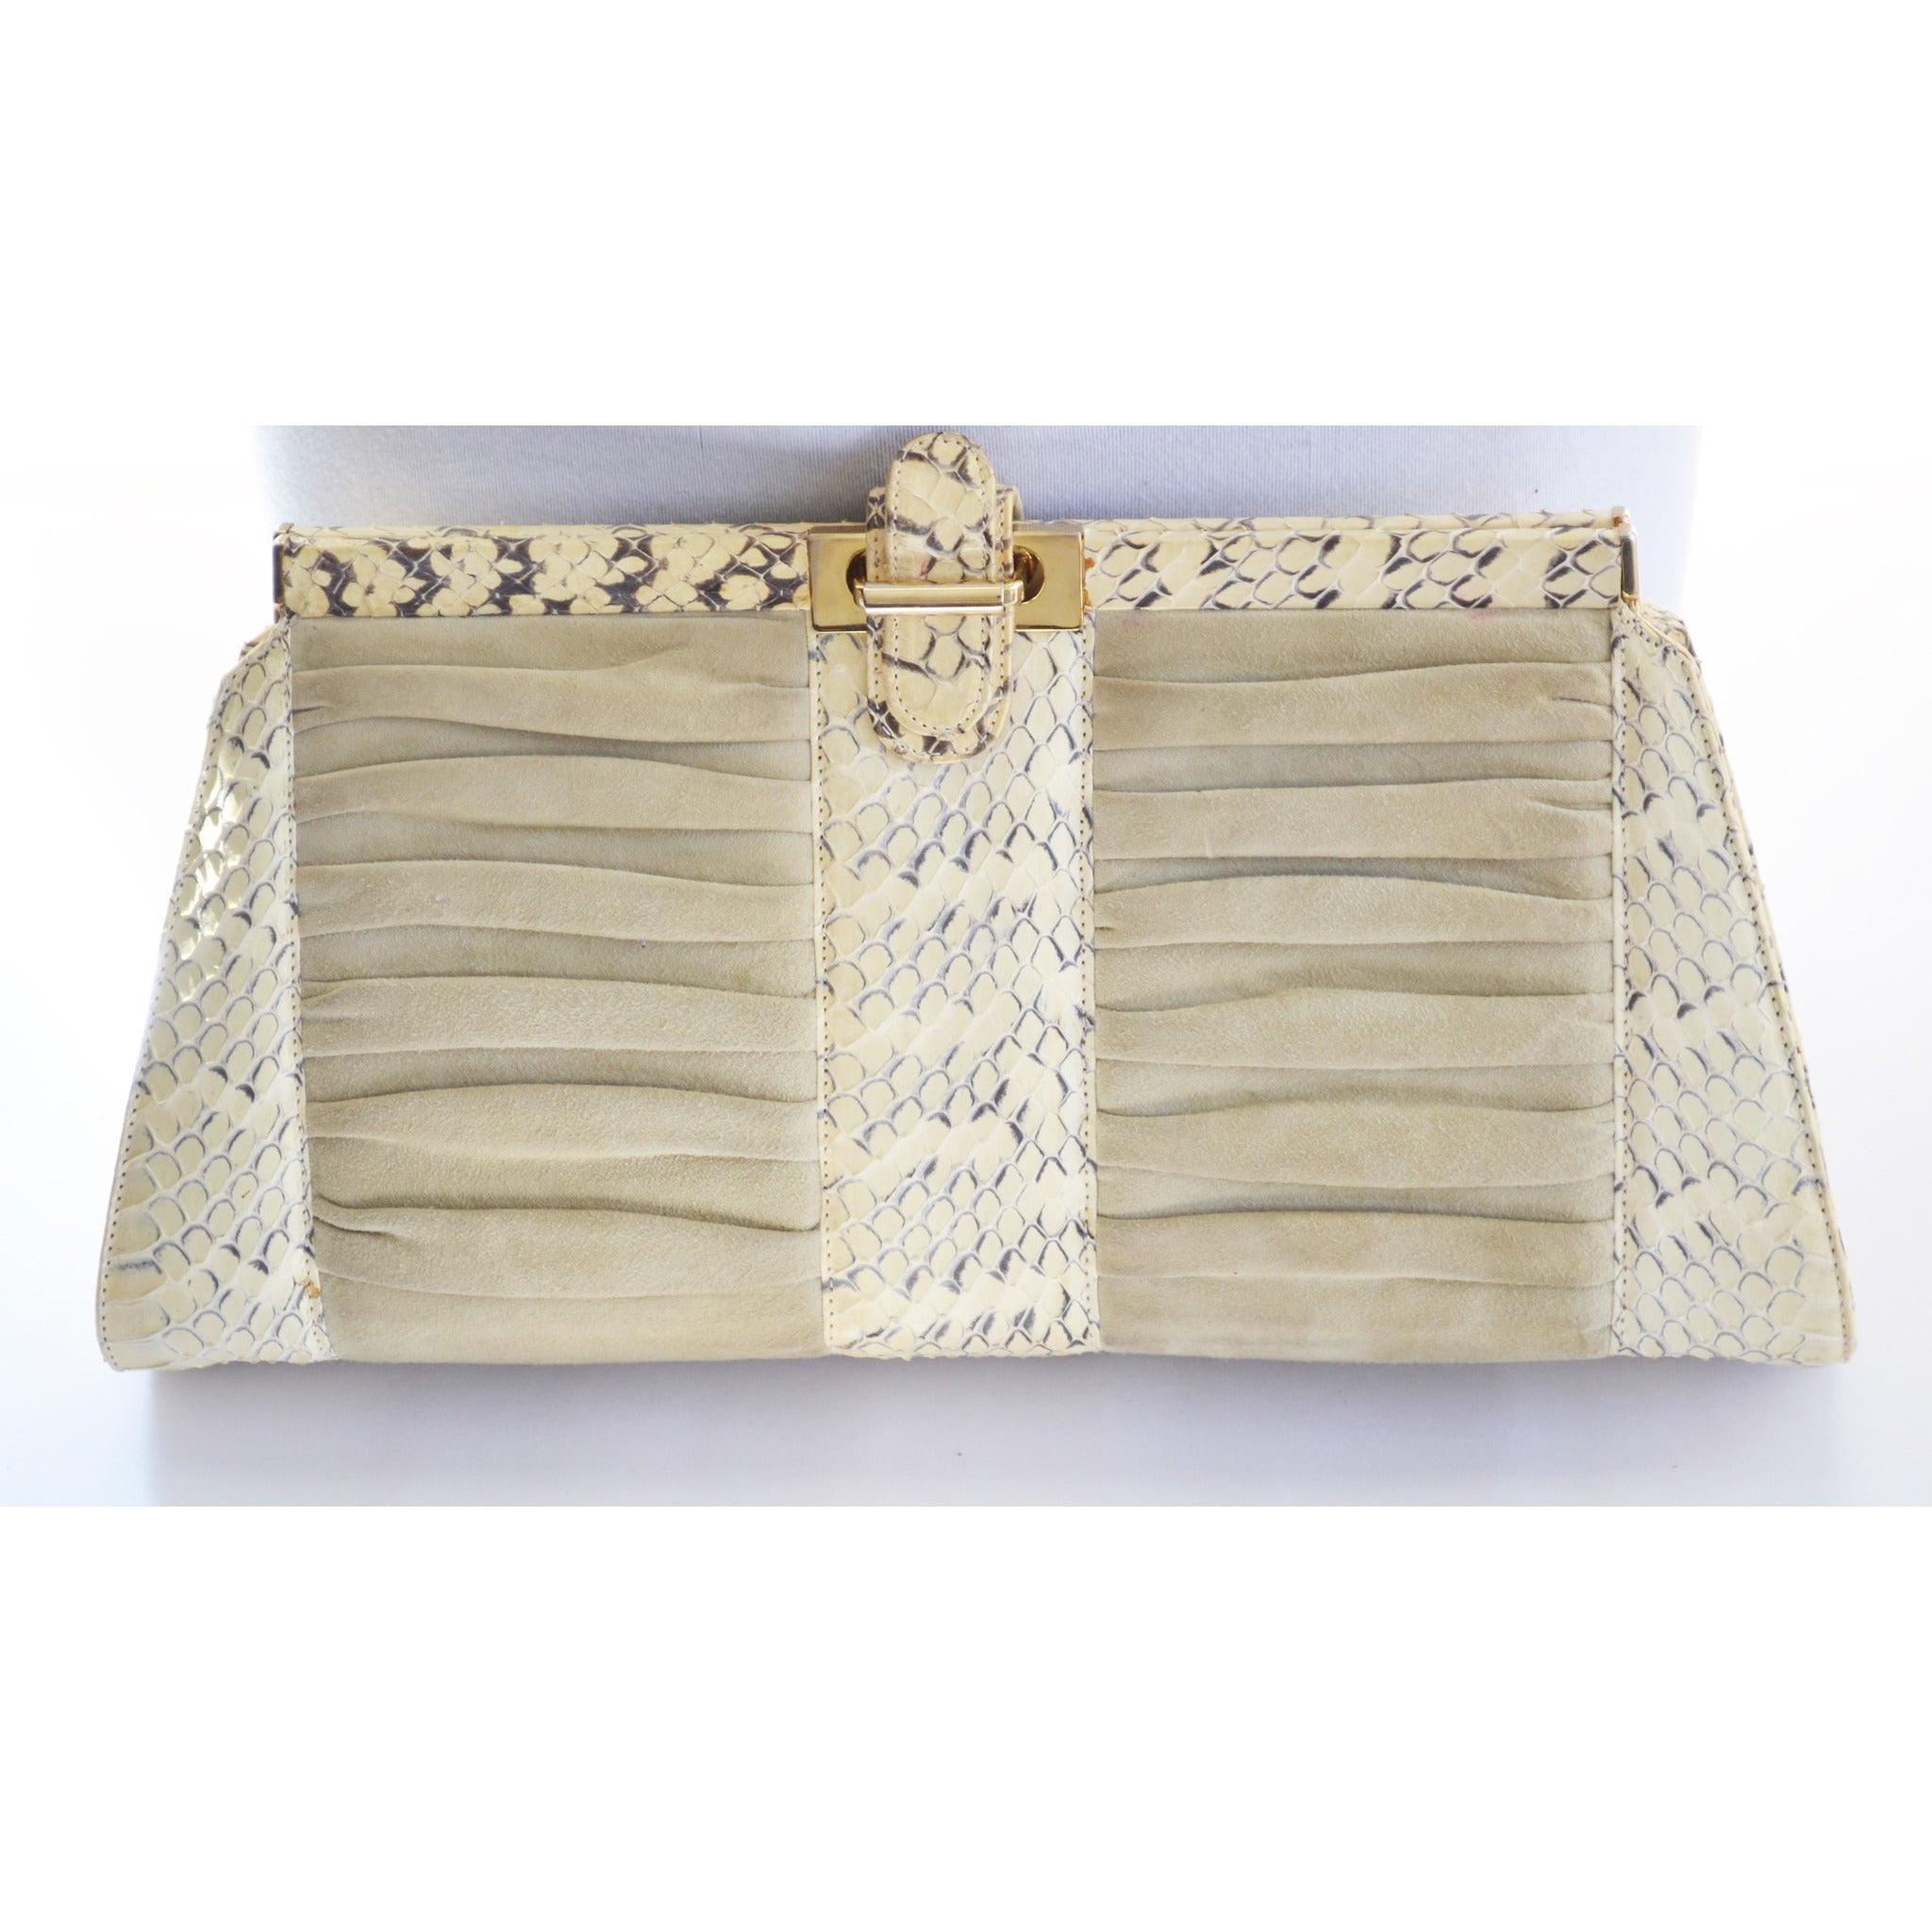 Vintage Cream Python Italian Purse By Battaglia - 1980's